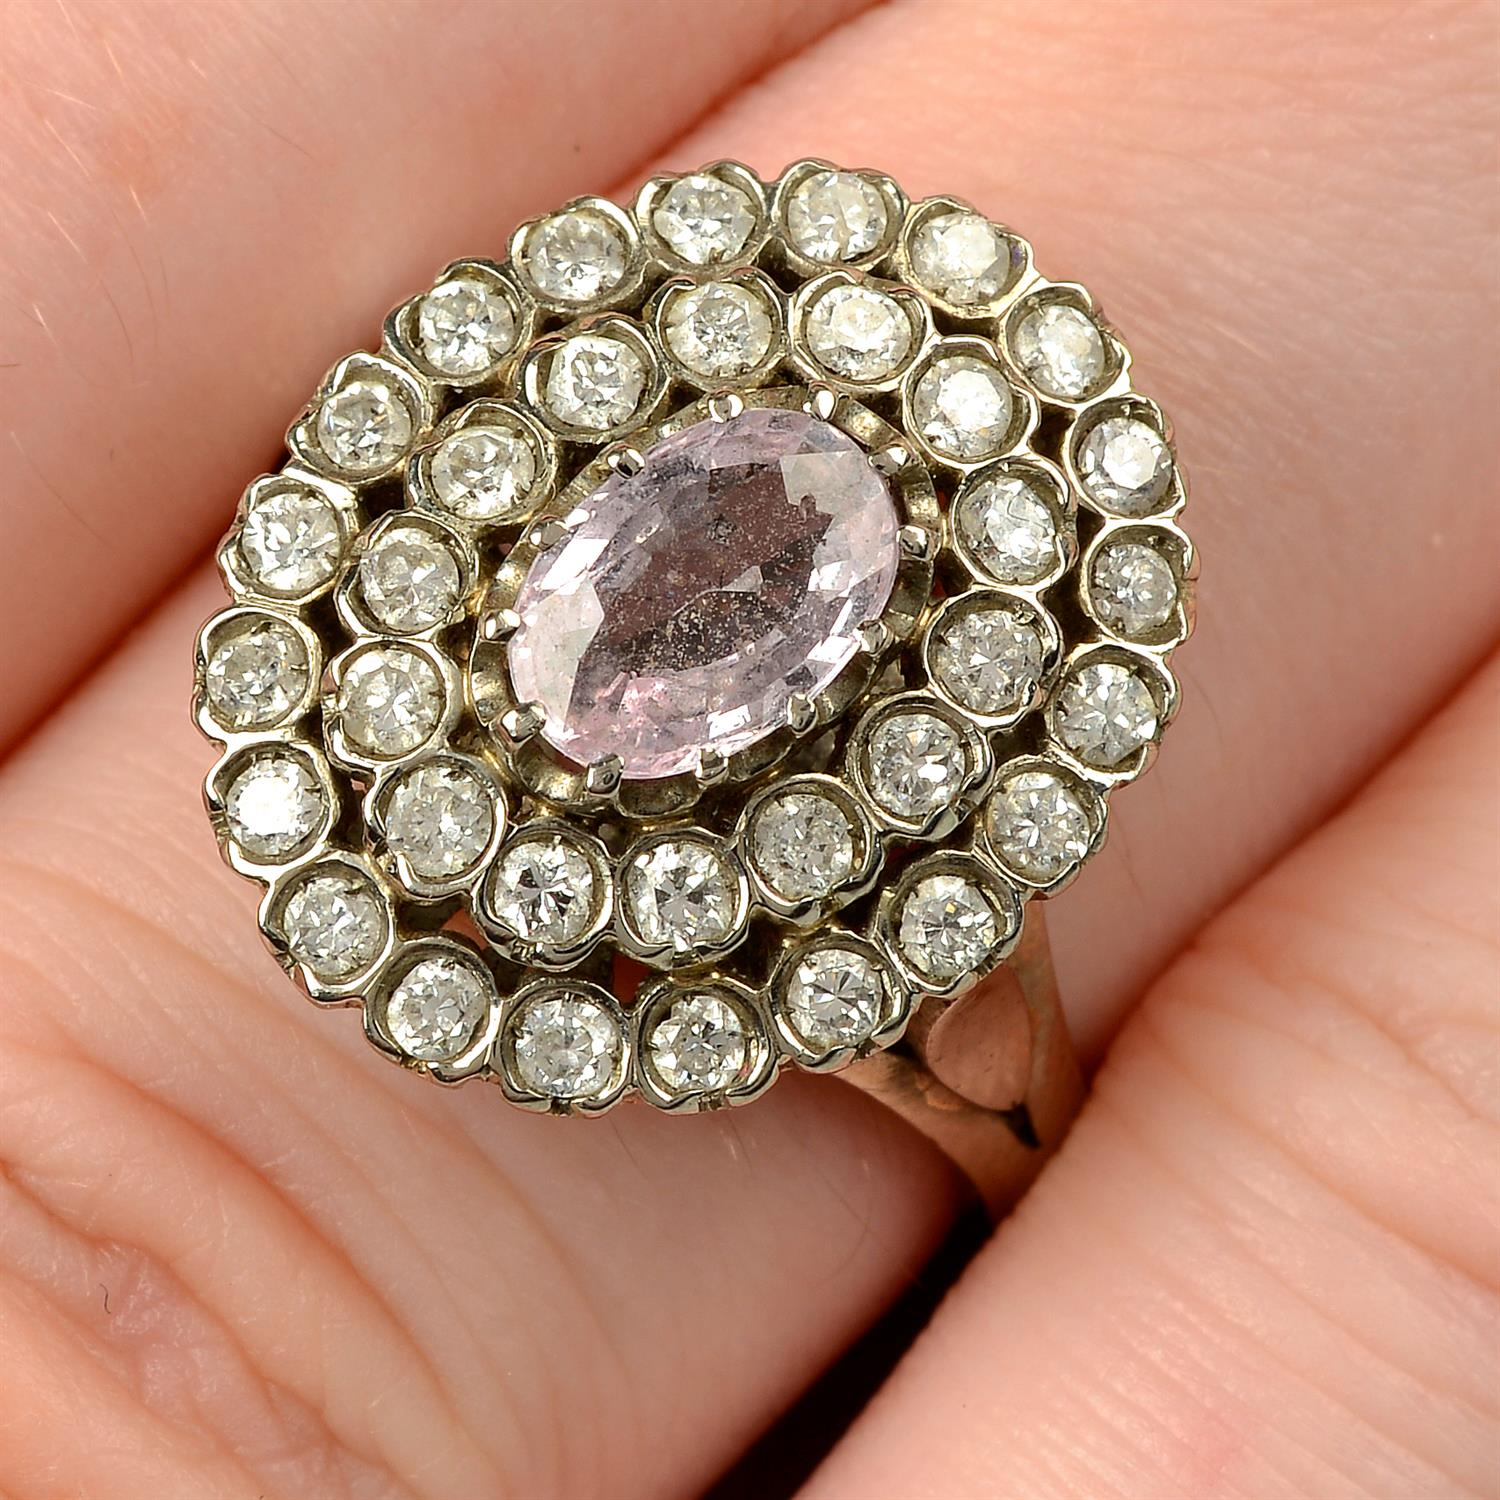 A pink sapphire and brilliant-cut diamond stepped cluster ring.